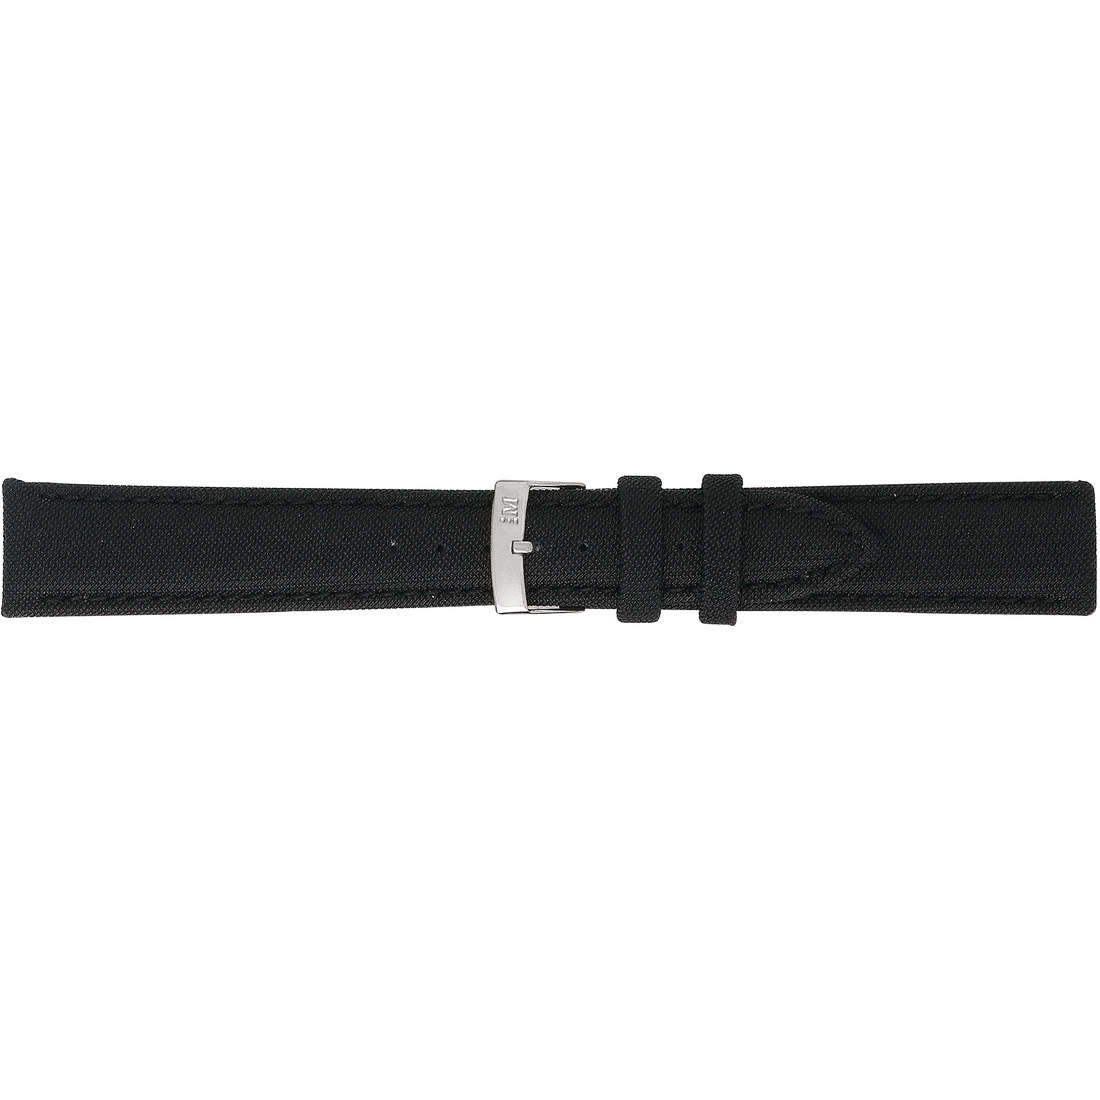 watch watch bands watch straps man Morellato Linea Sport A01X2778841019CR14